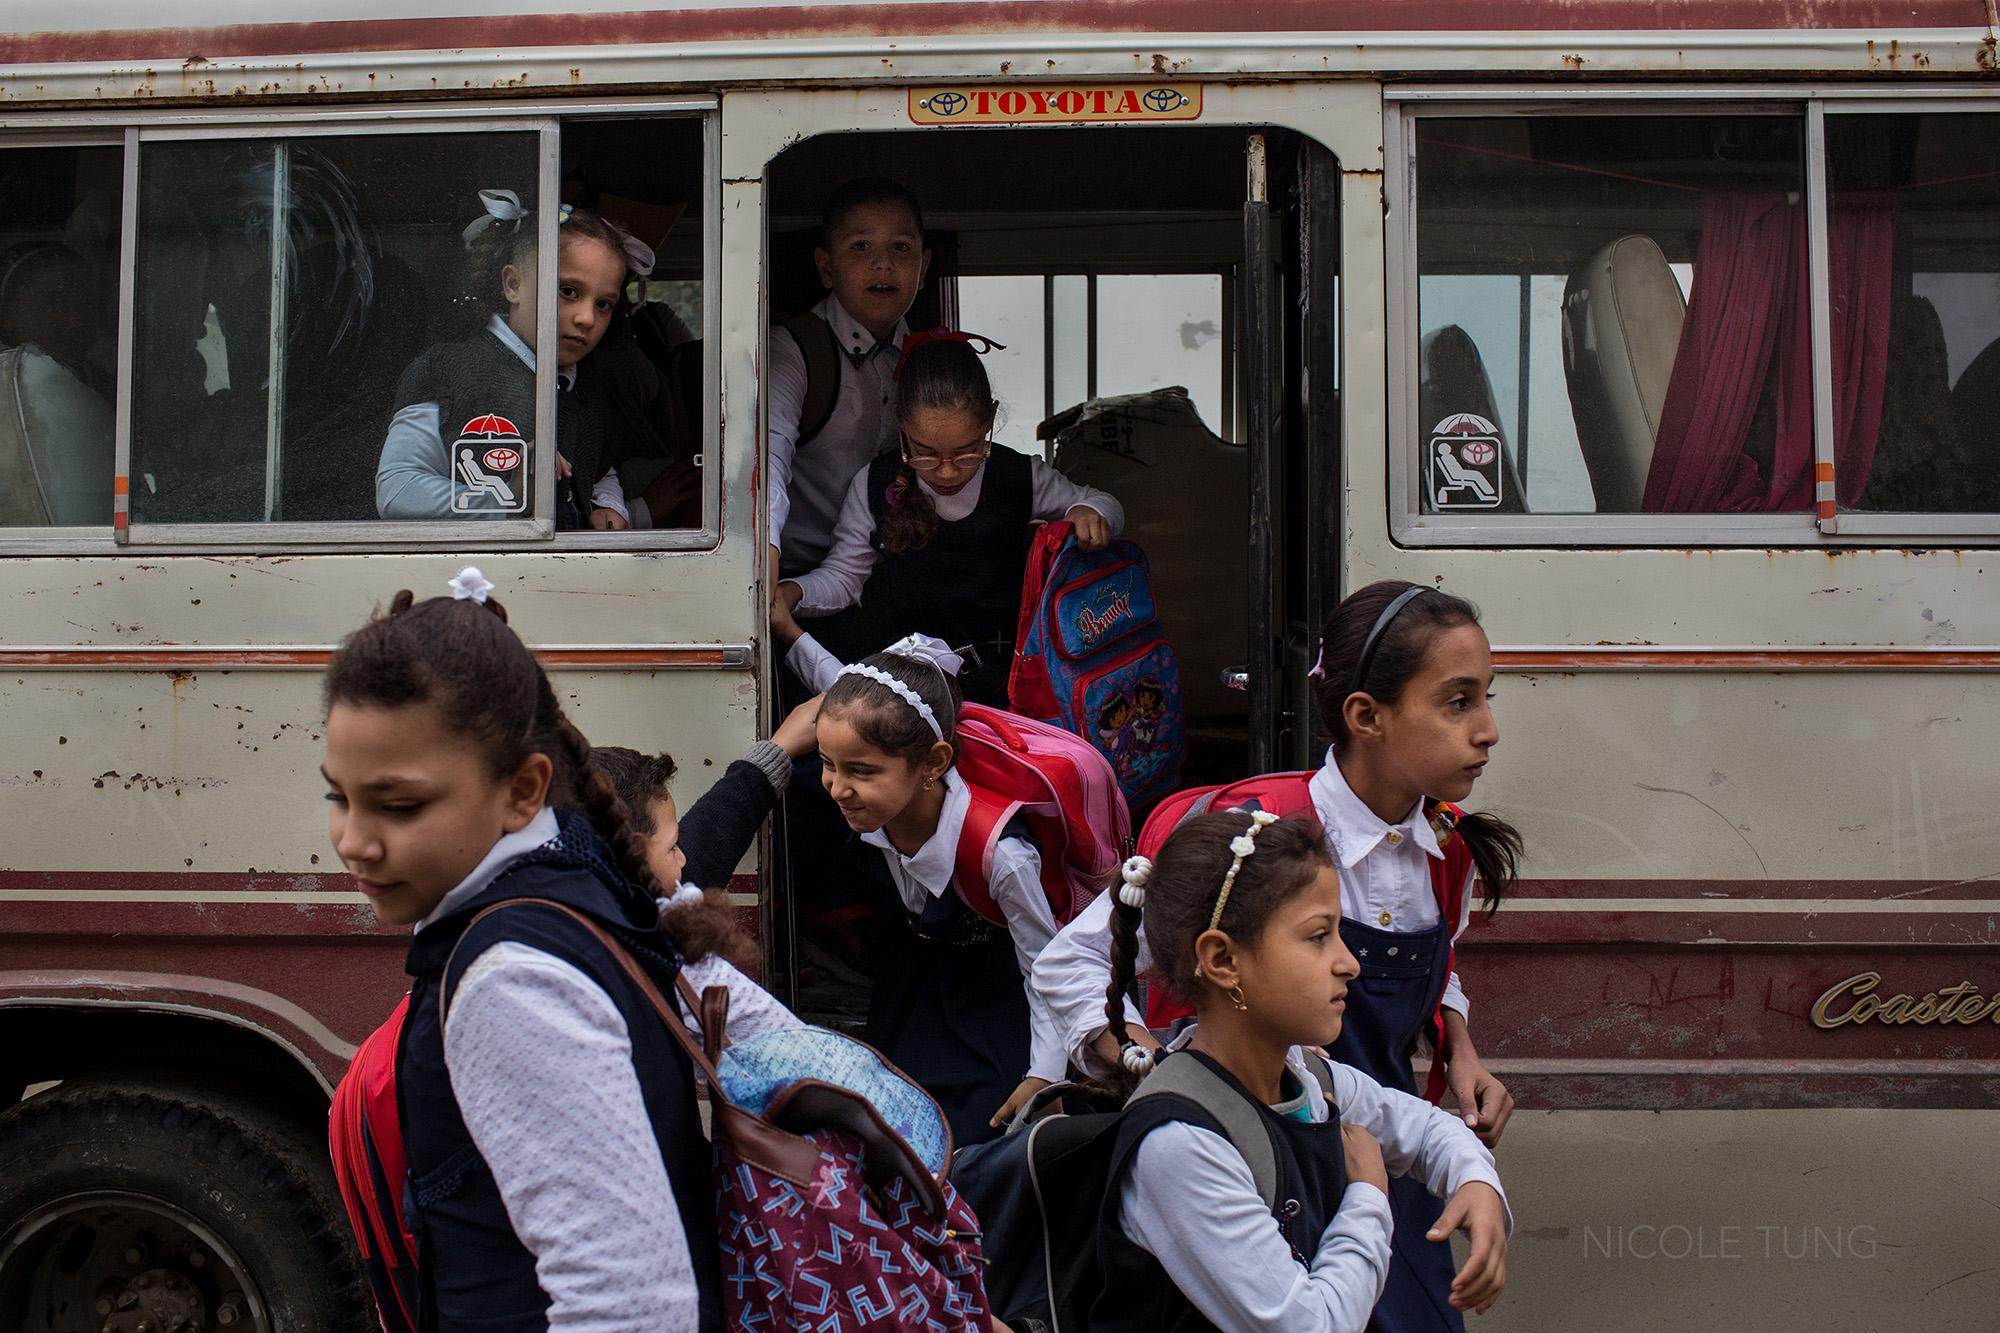 Schoolchildren exit a bus in western Mosul, Iraq. Since Mosul was declared liberated by the Iraqi forces four months ago, some schools have reopened in the city where many children have missed years of their education. November 2017.